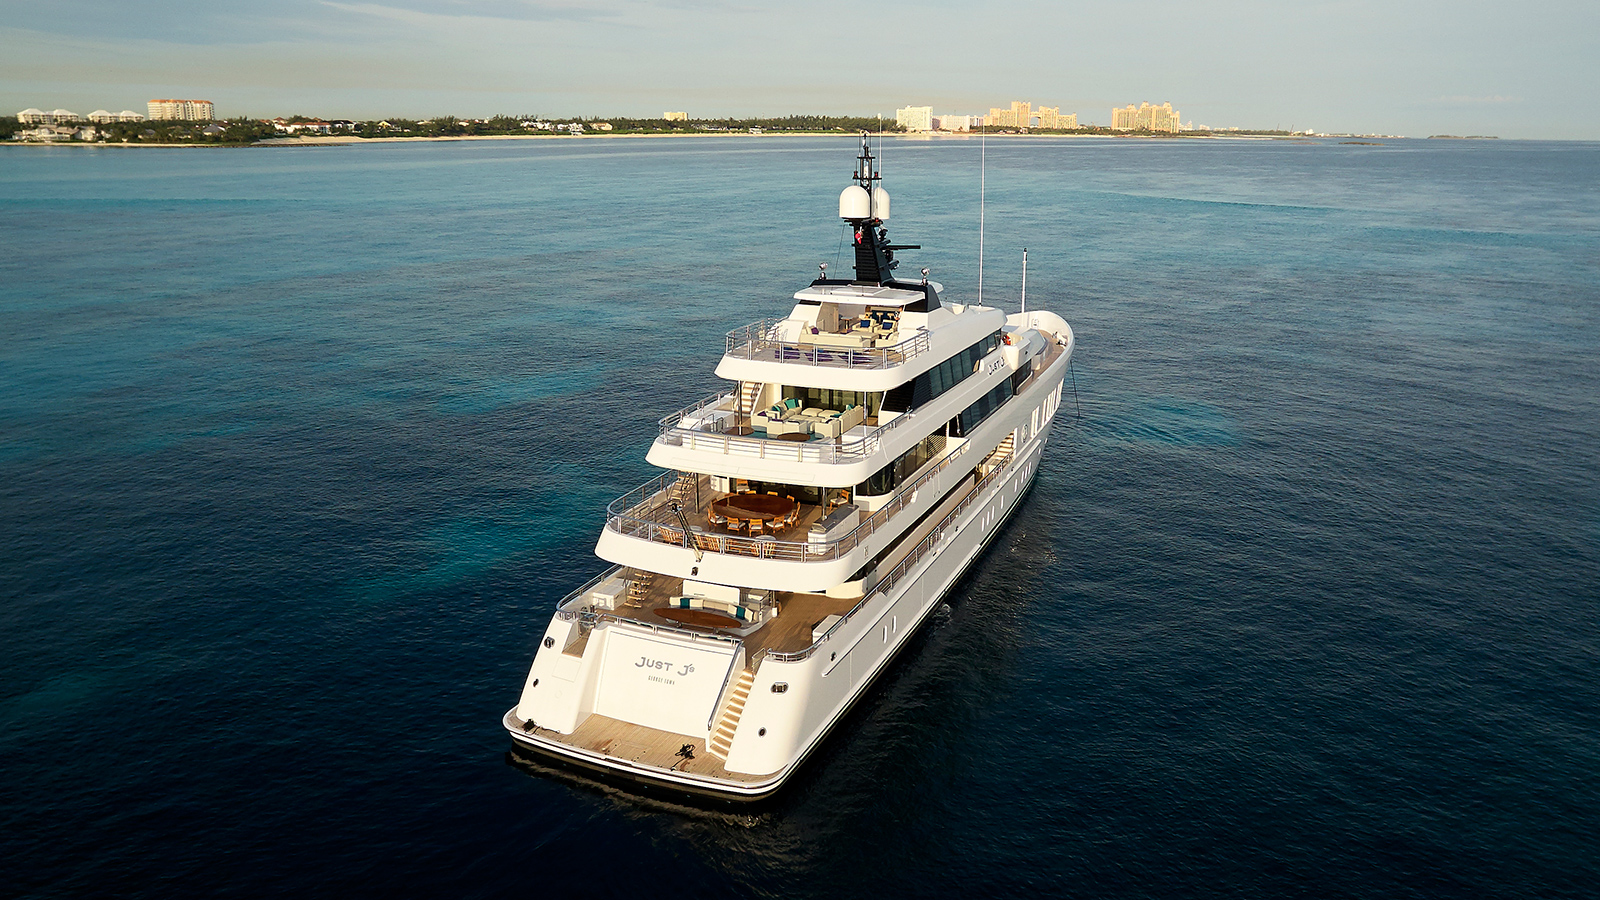 aft-view-of-hakvoort-super-yacht-just-js